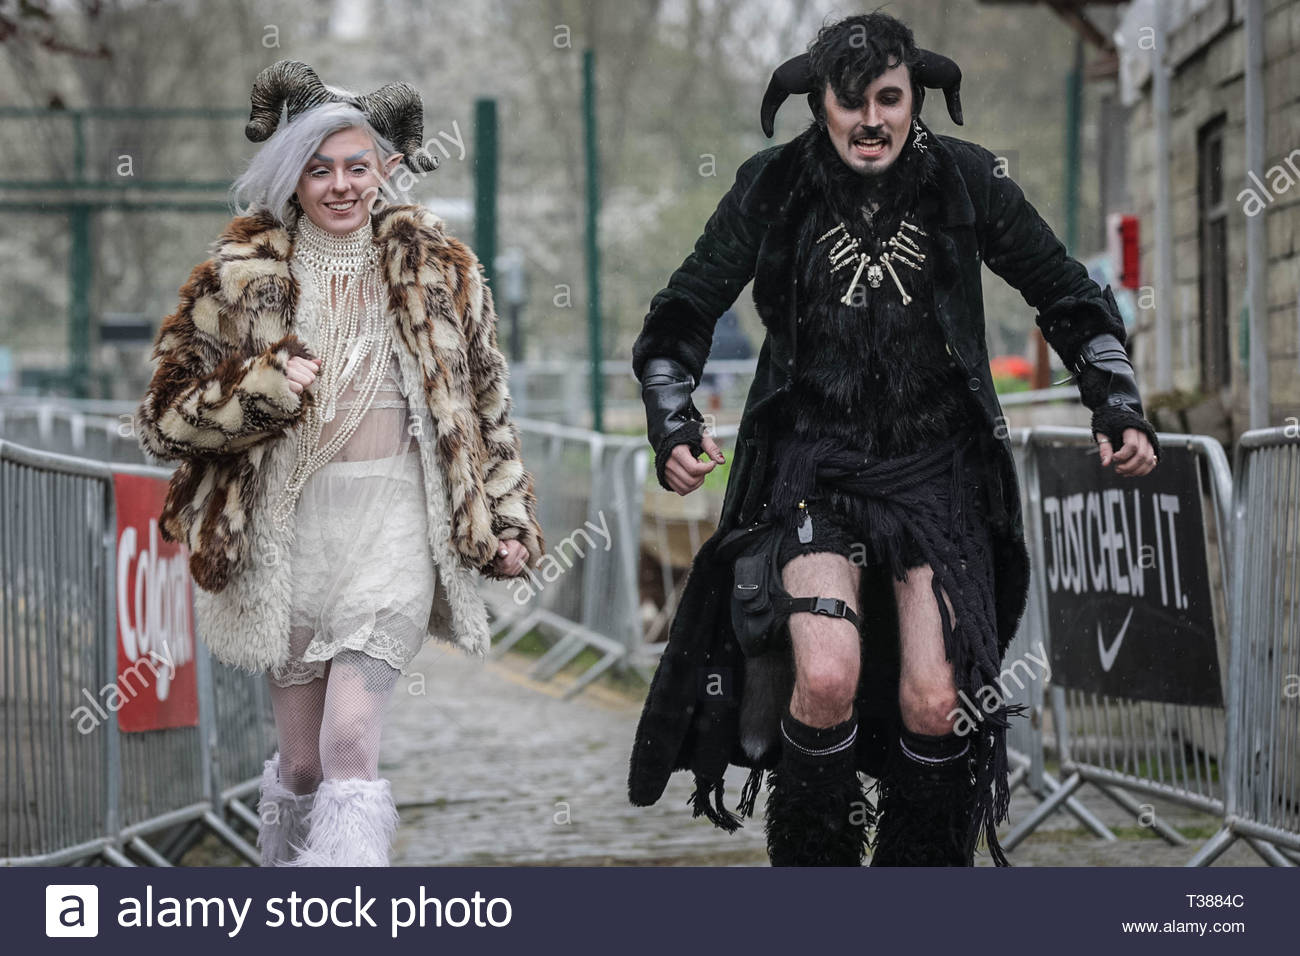 London, UK. 7th April 2019. A suitably dressed couple have fun at the 11th Annual Oxford vs Cambridge Goat Race at Spitalfields City Farm. Credit: Guy Corbishley/Alamy Live News - Stock Image